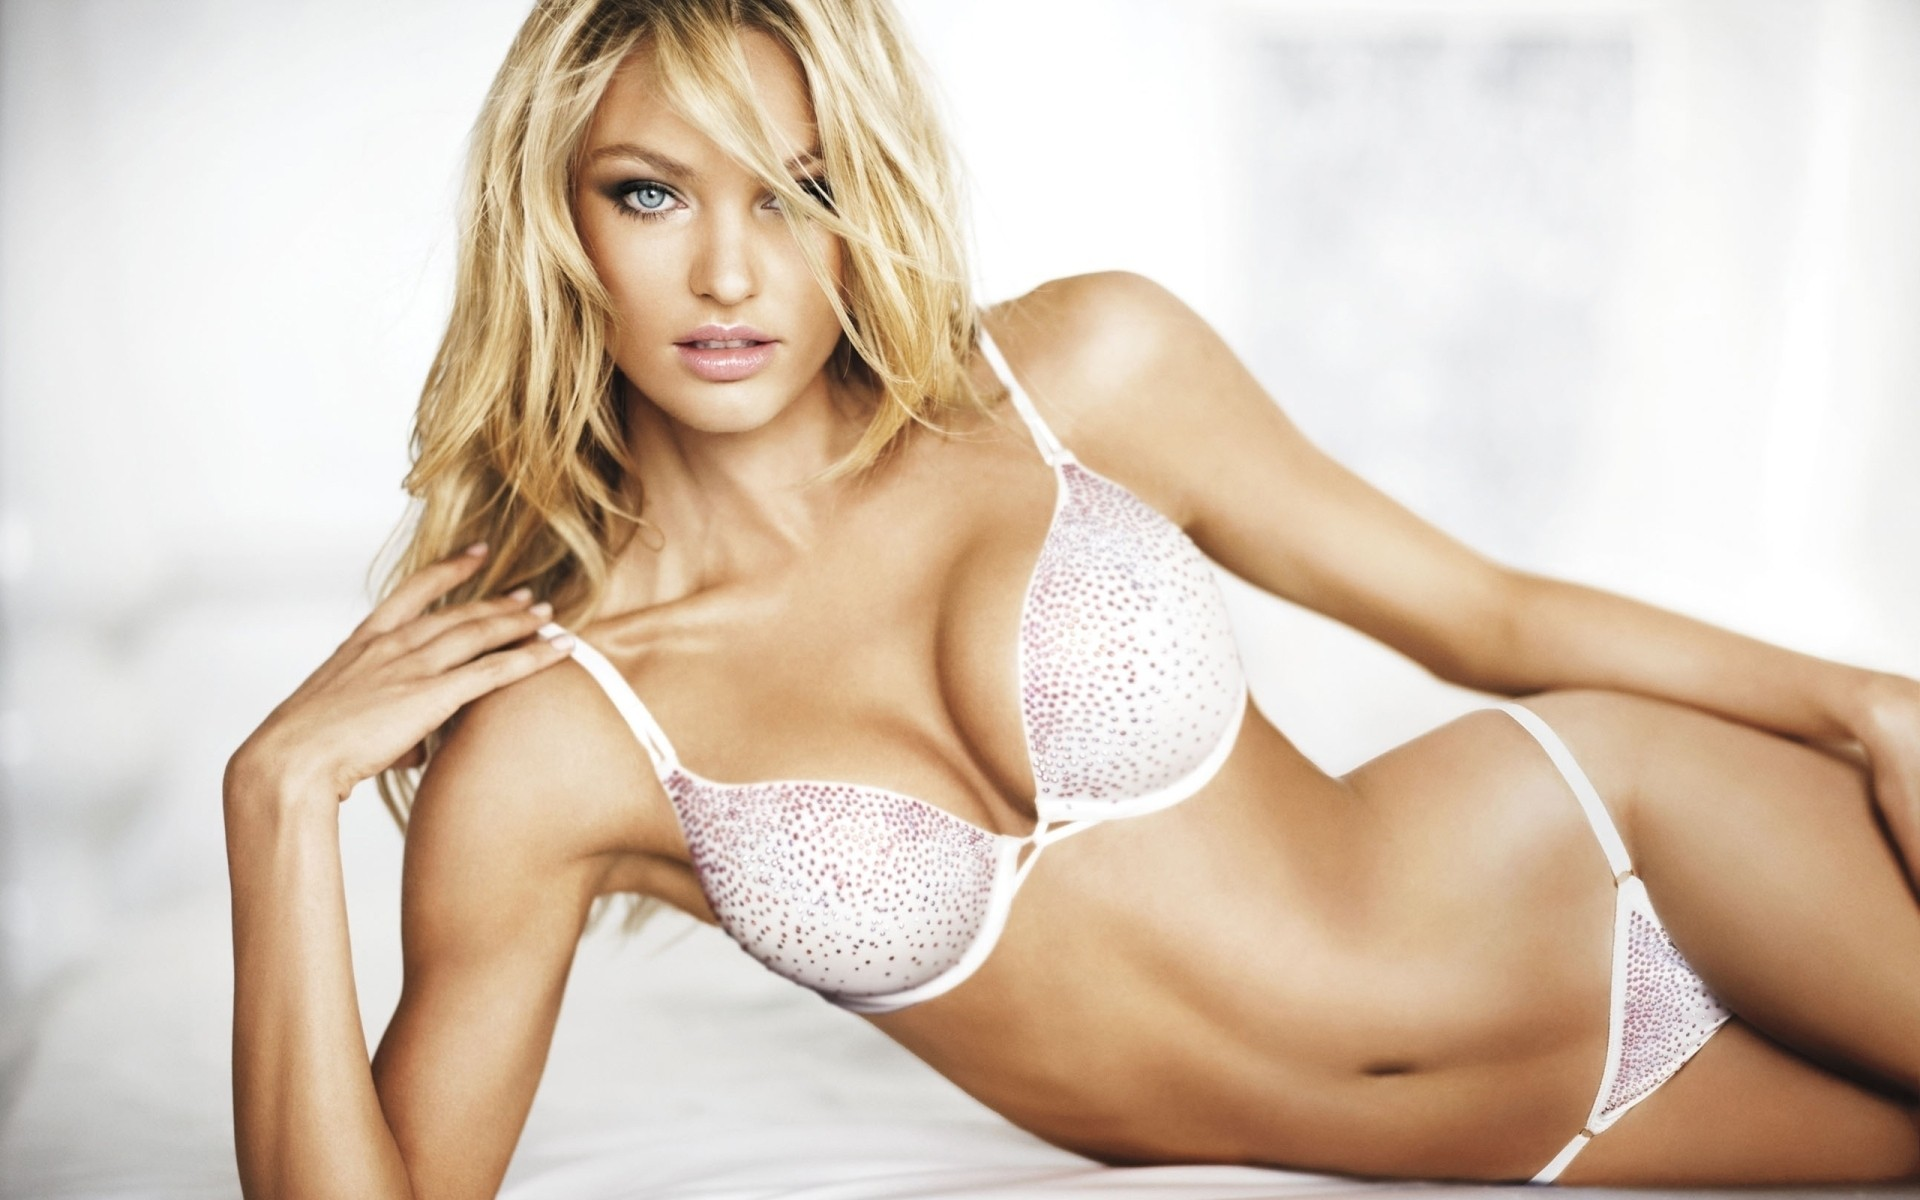 lingerie blondes woman candice HD Wallpaper